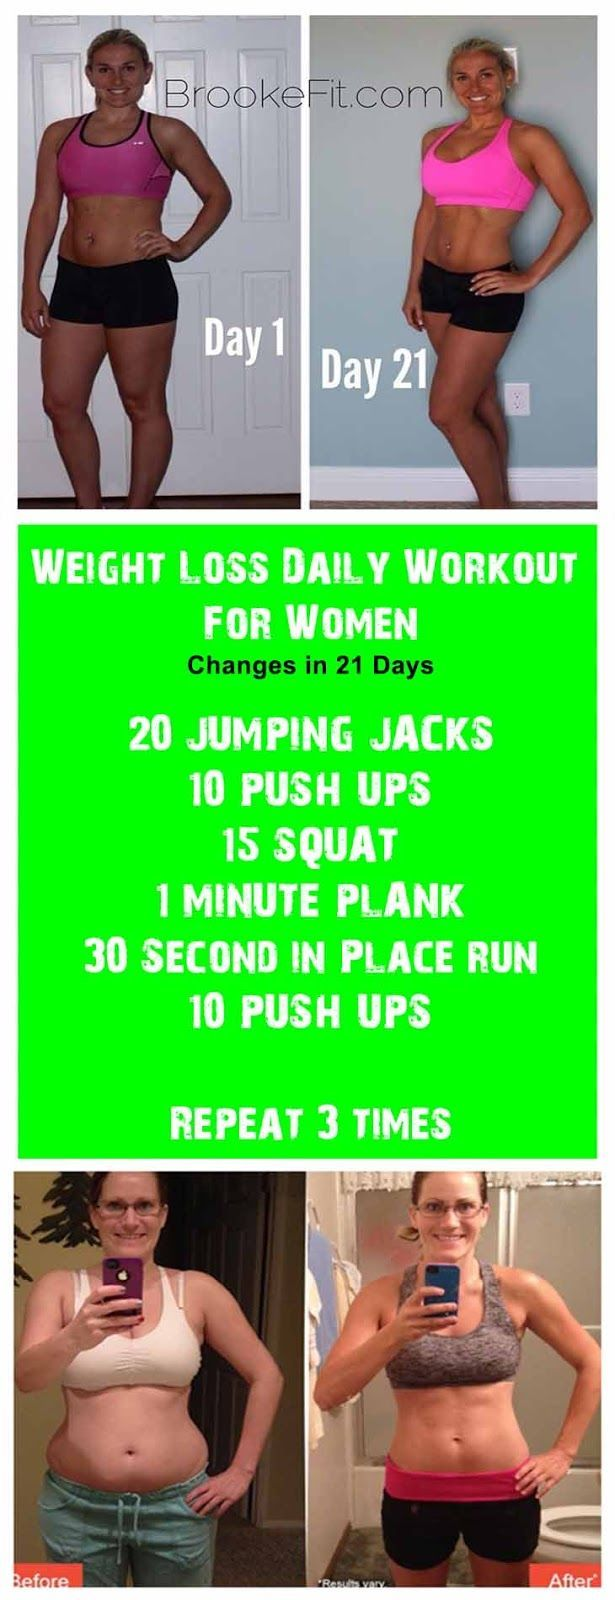 Weight Loss Daily Workout For Women and learn Fat Loss Tips - The 6 Commandments of Fat Burning | 21 days | workout | fitness | fat loss | motivation | challenge | workout plan |